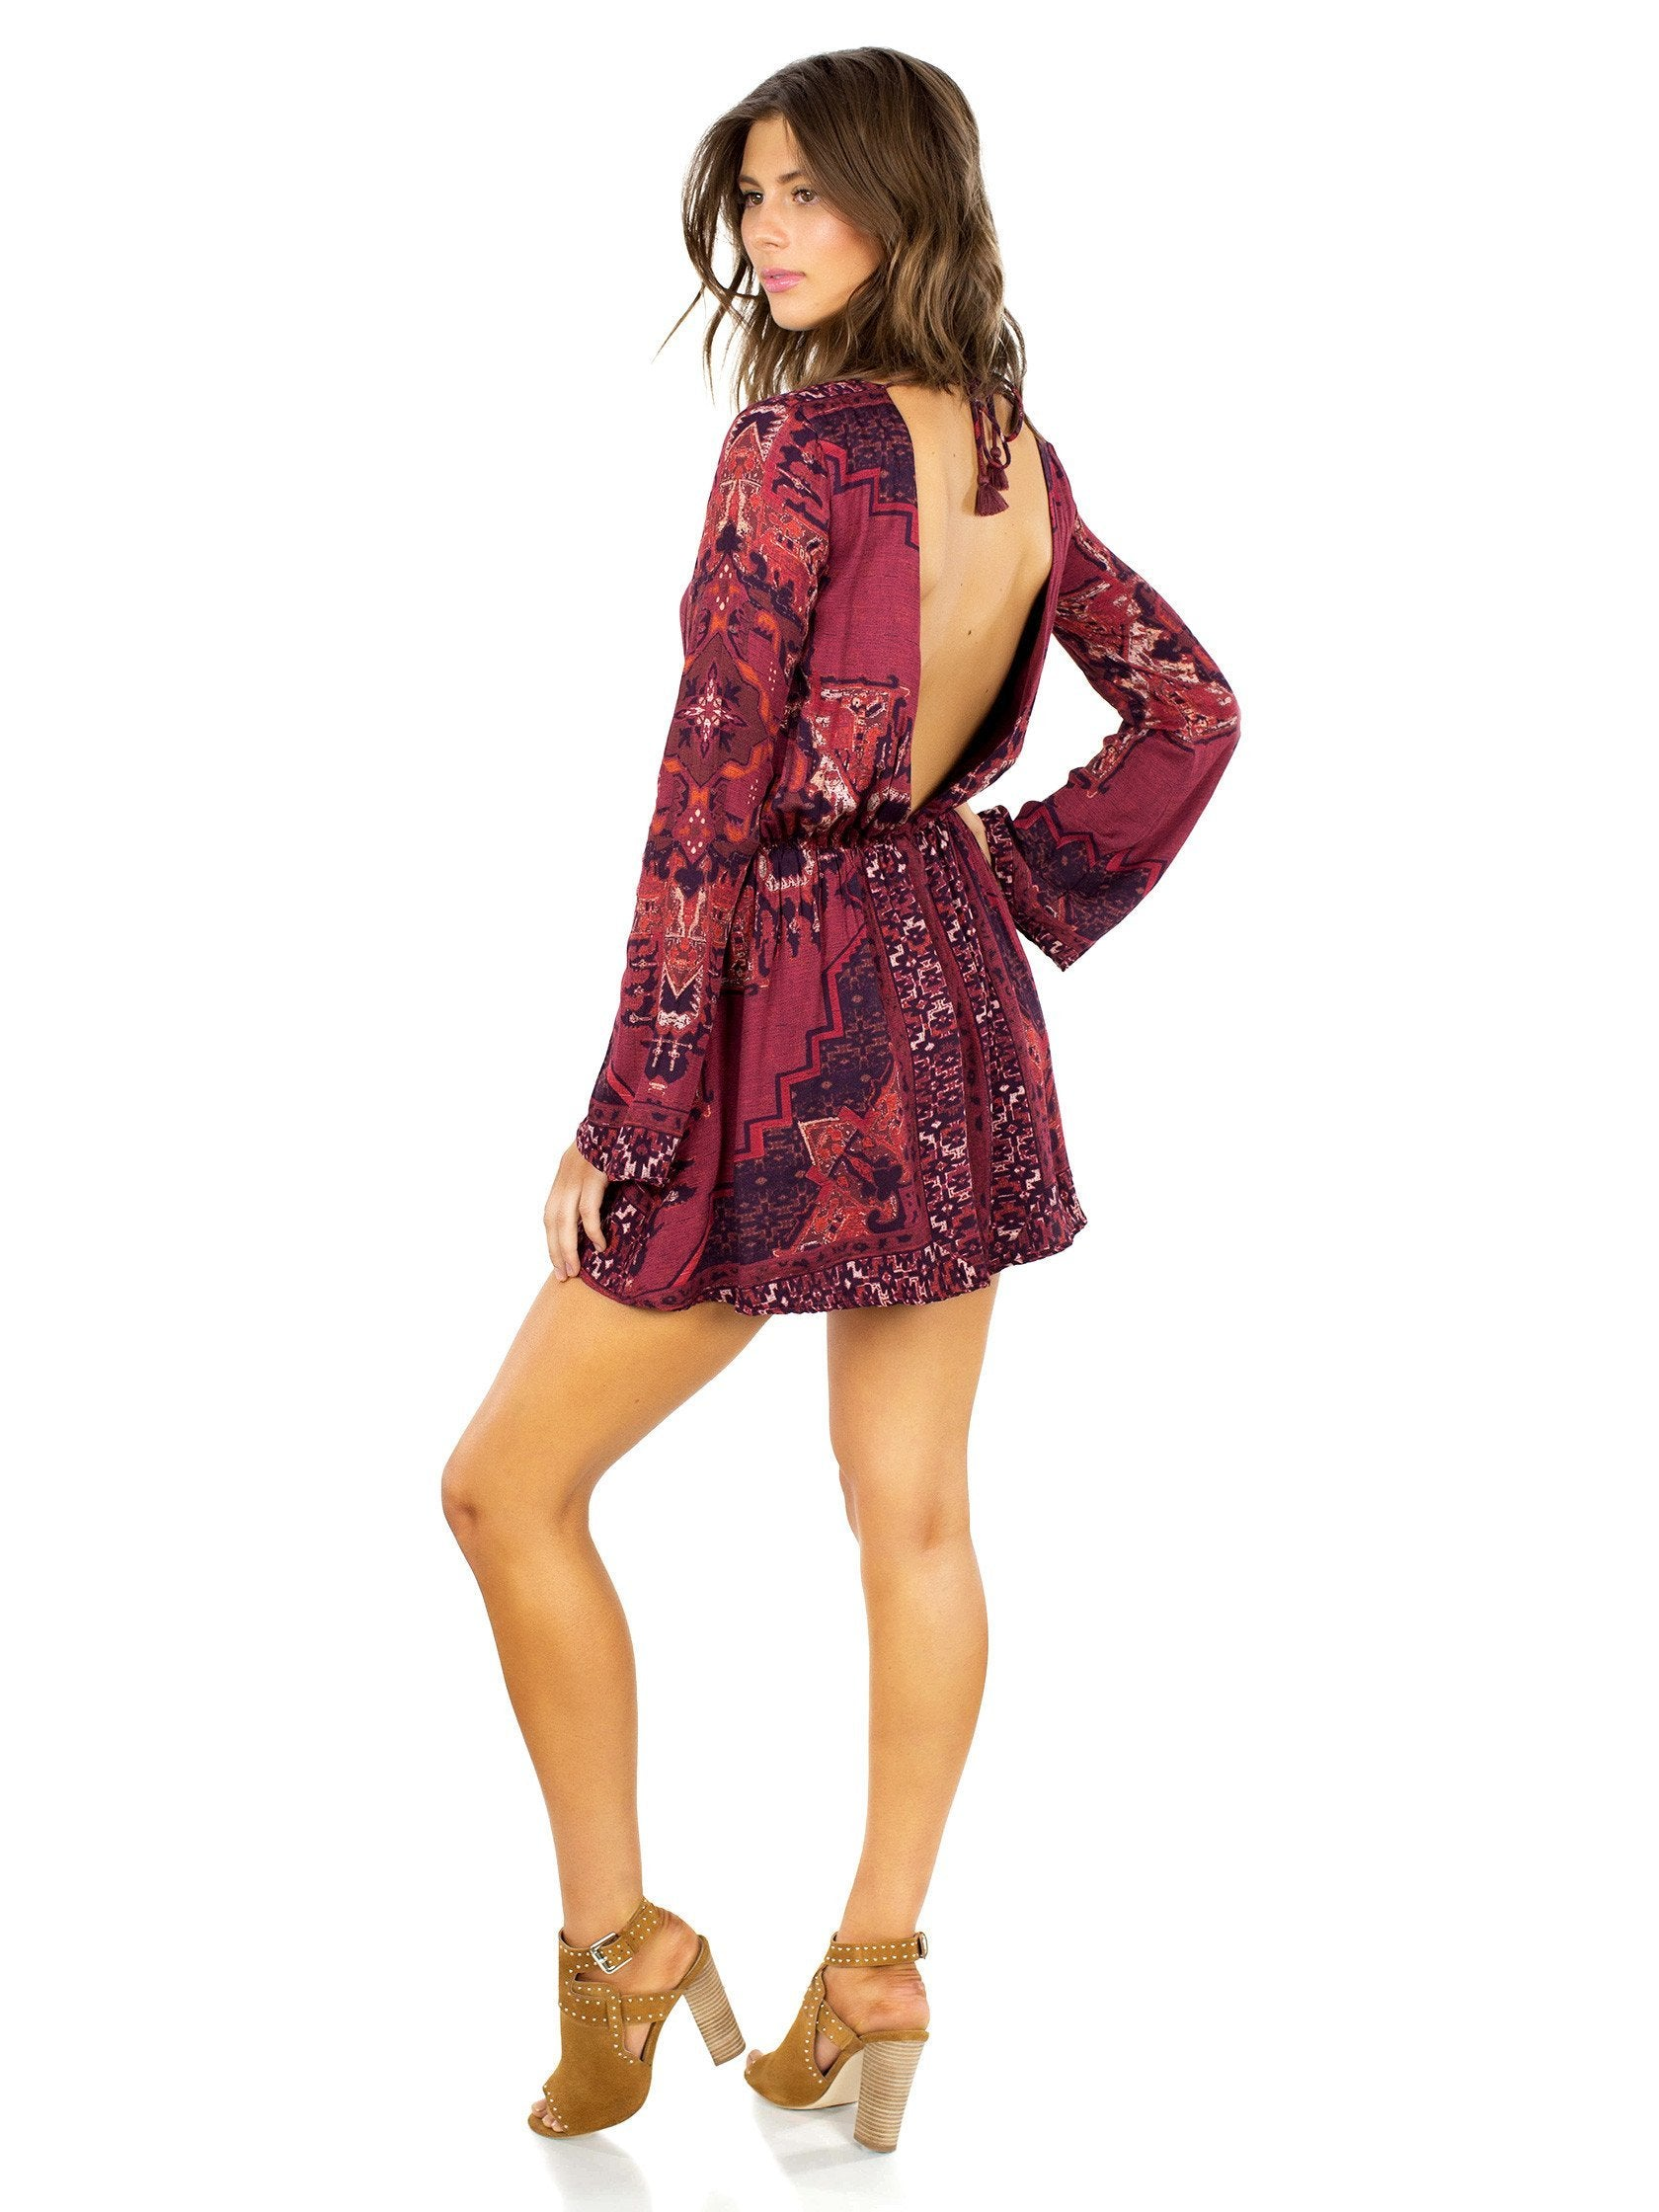 Women wearing a dress rental from The Jetset Diaries called Kilim Mini Dress